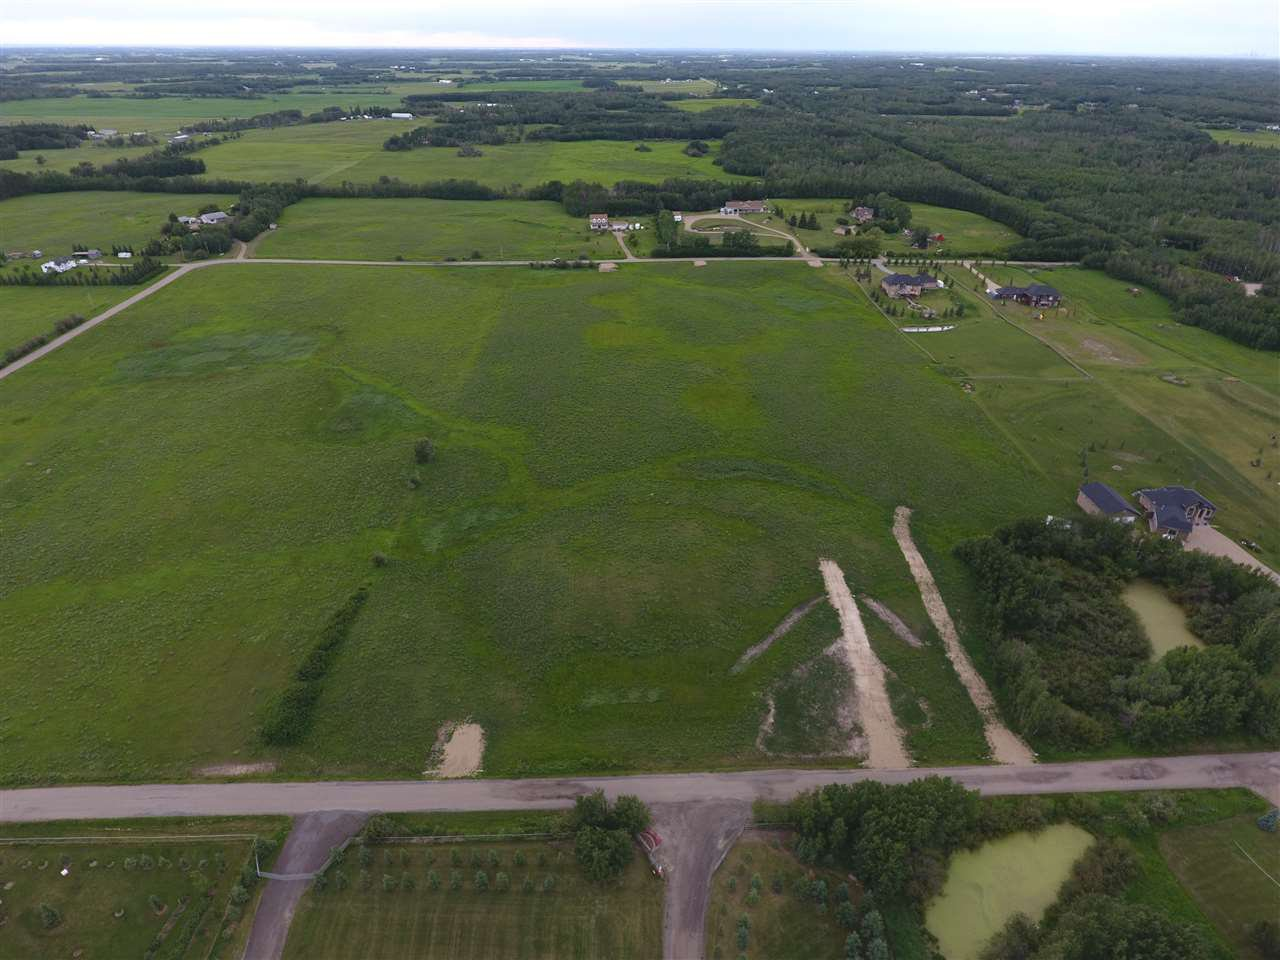 Main Photo: 22111 Twp Rd 510: Rural Leduc County Rural Land/Vacant Lot for sale : MLS®# E4118363